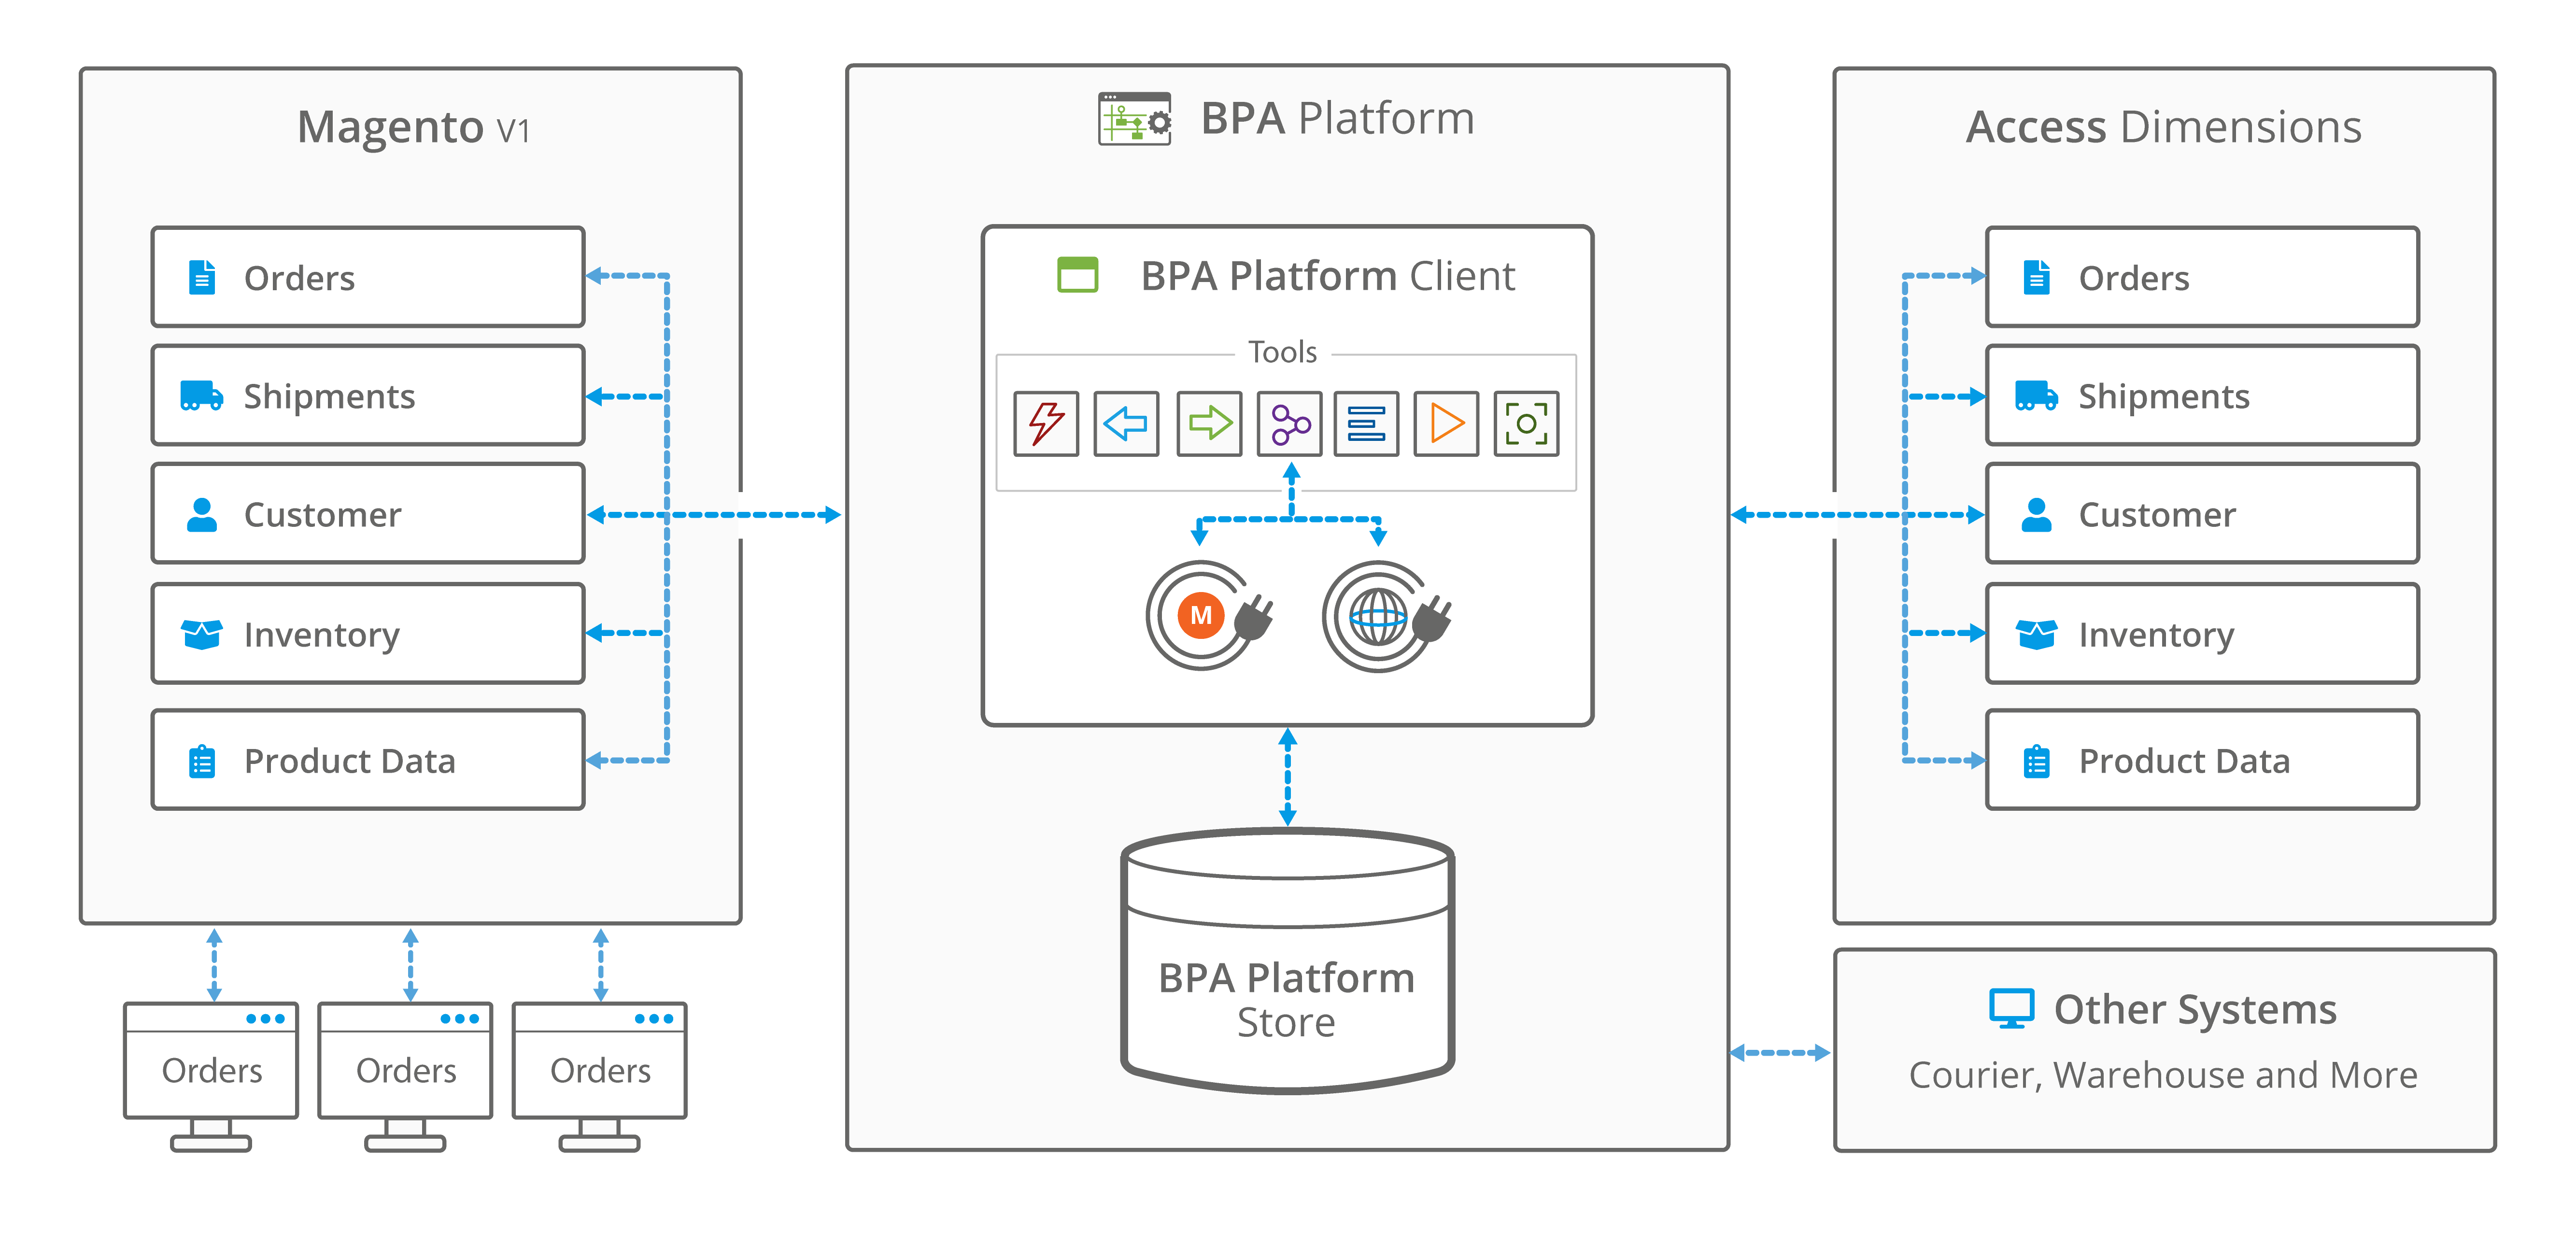 Magento Access Dimensions integration connector